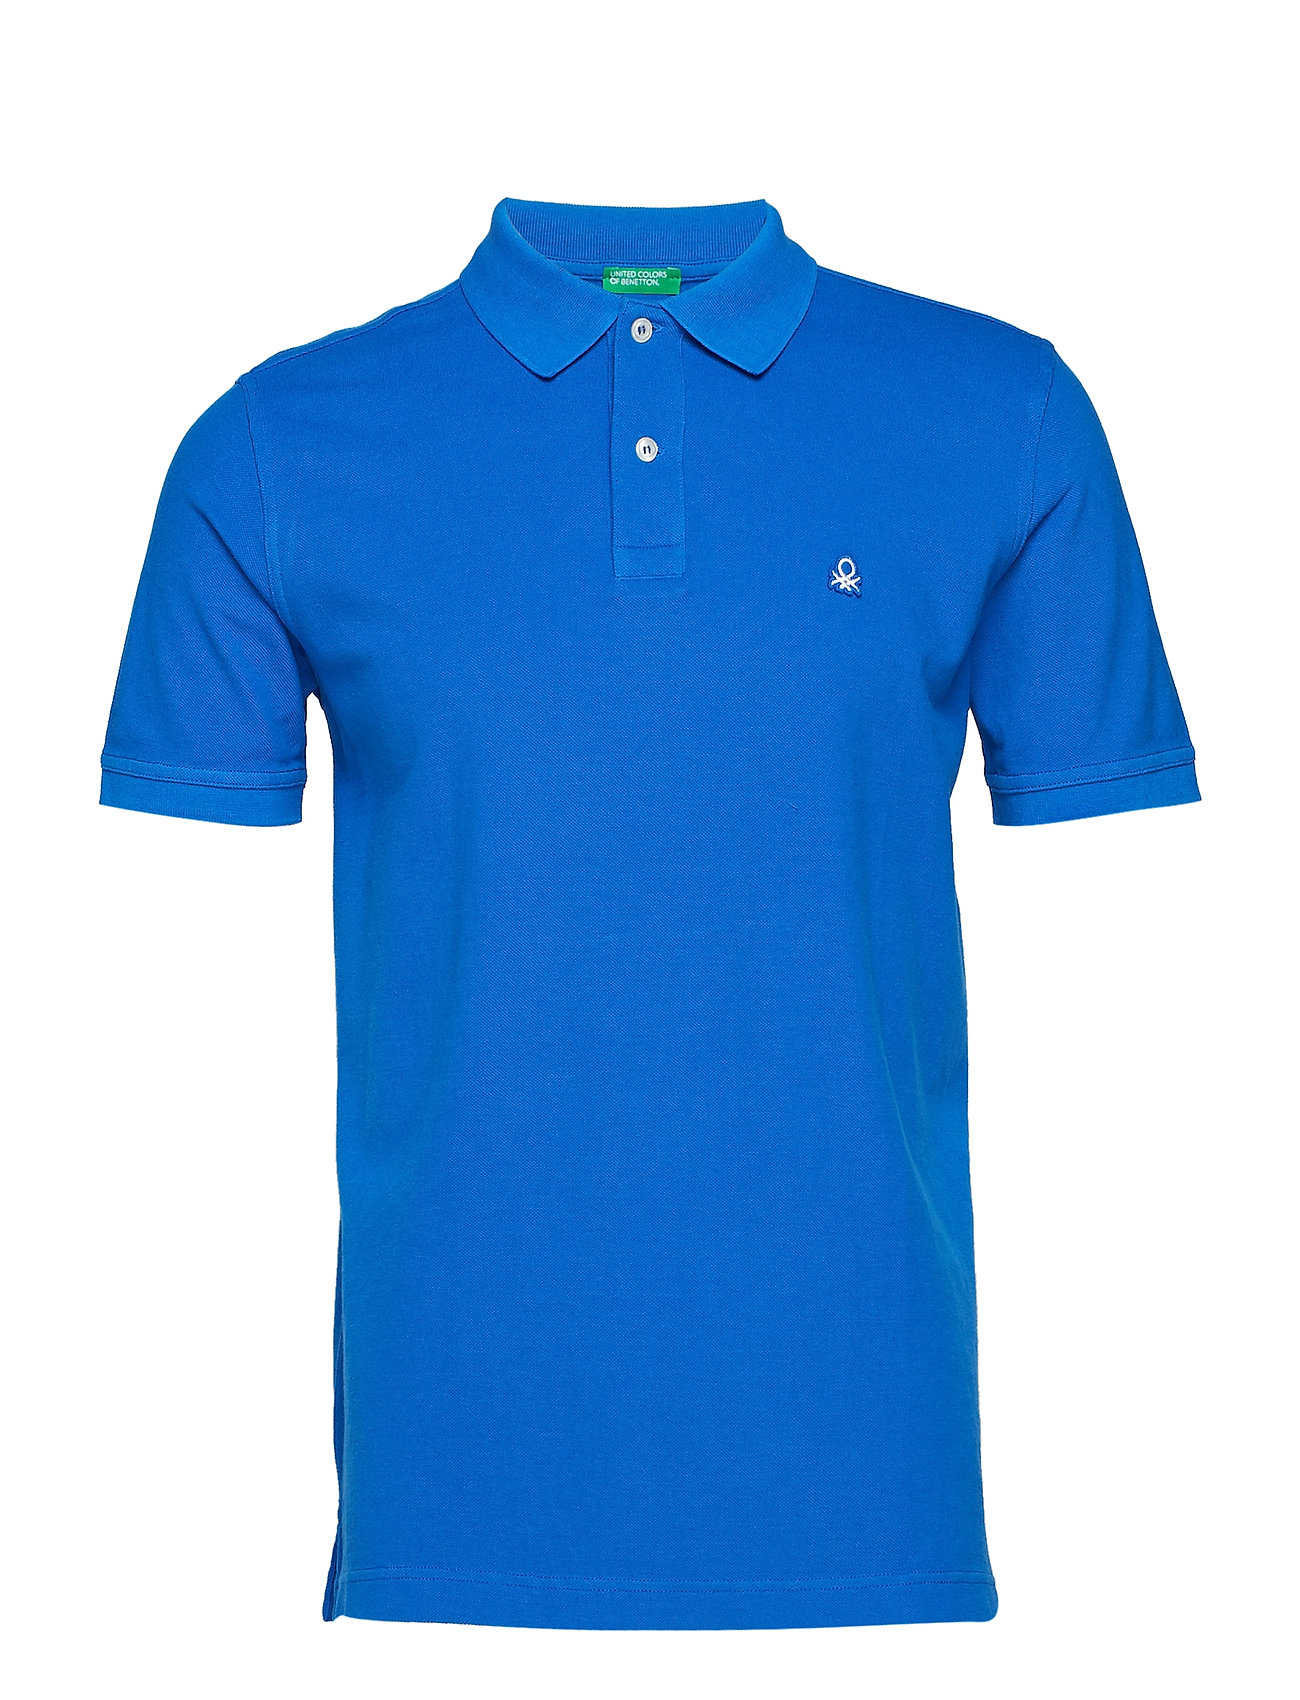 H/S Polo Shirt - United Colors of Benetton